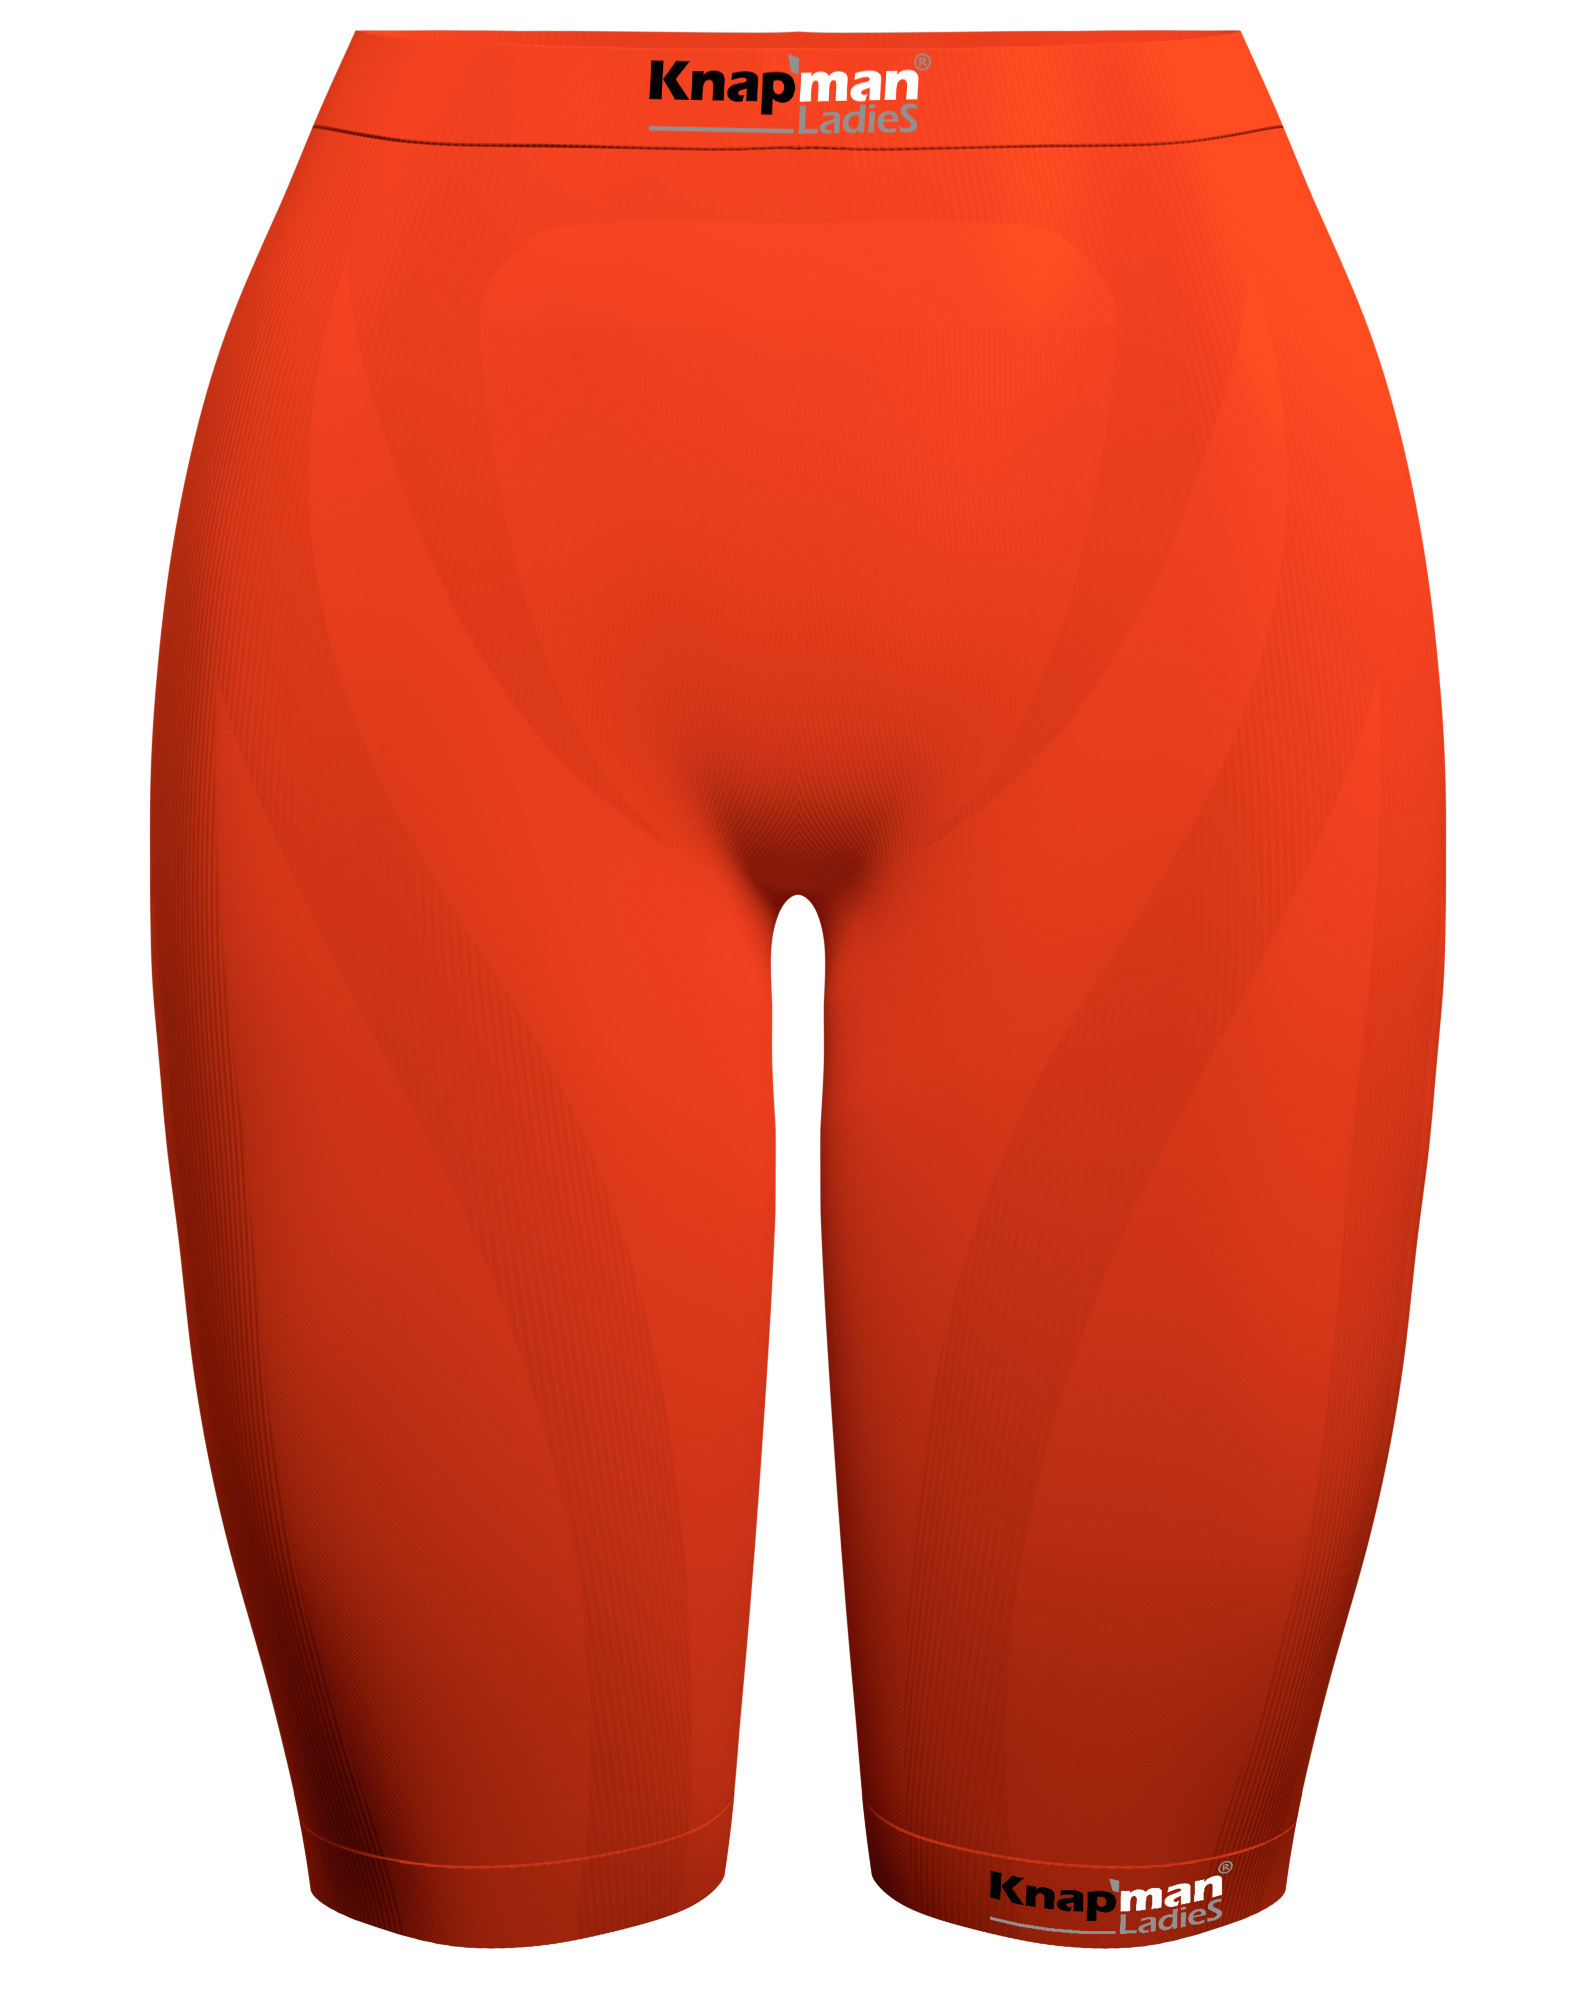 Knap'man Damen Kompressionsshorts 45% Orange